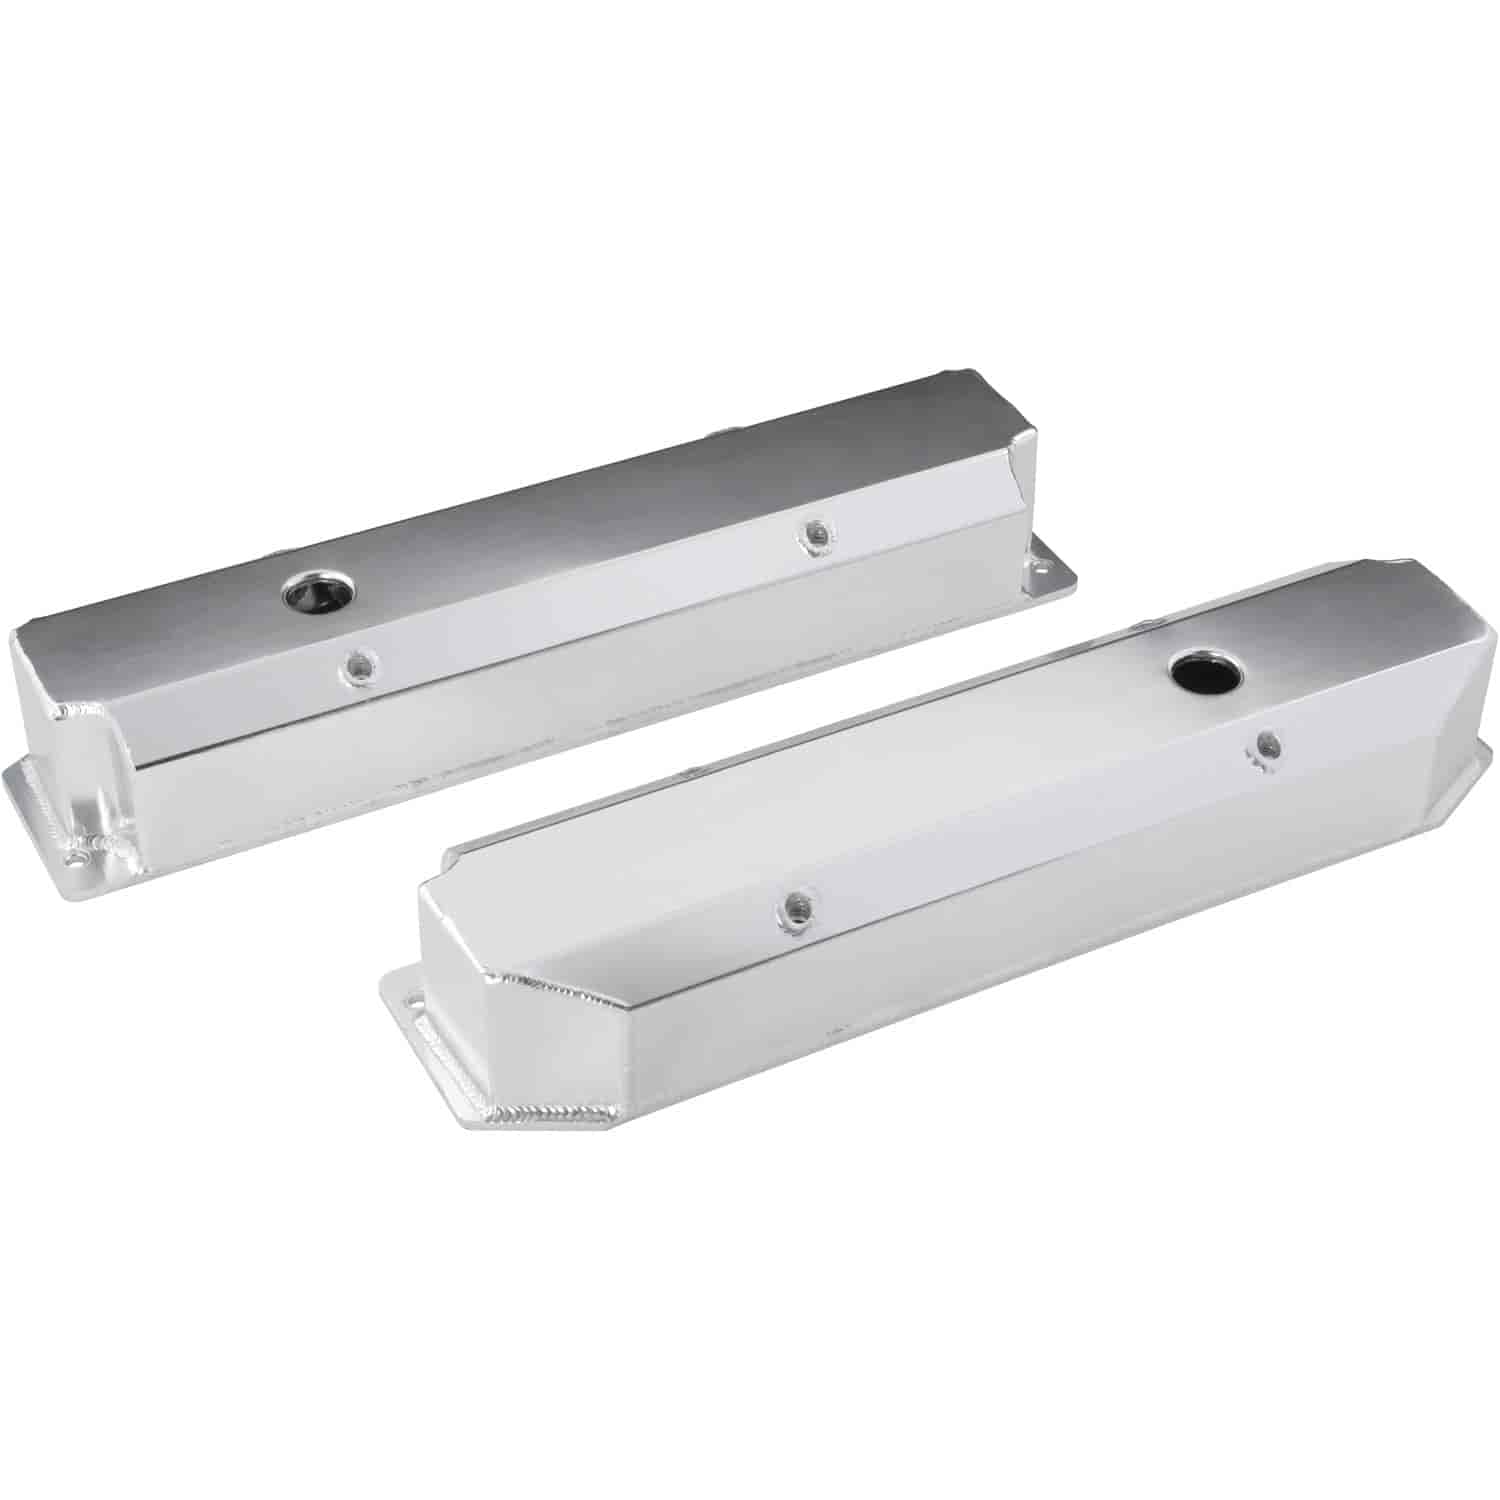 JEGS Fabricated Aluminum Valve Covers for Big Block Chrysler 383-440